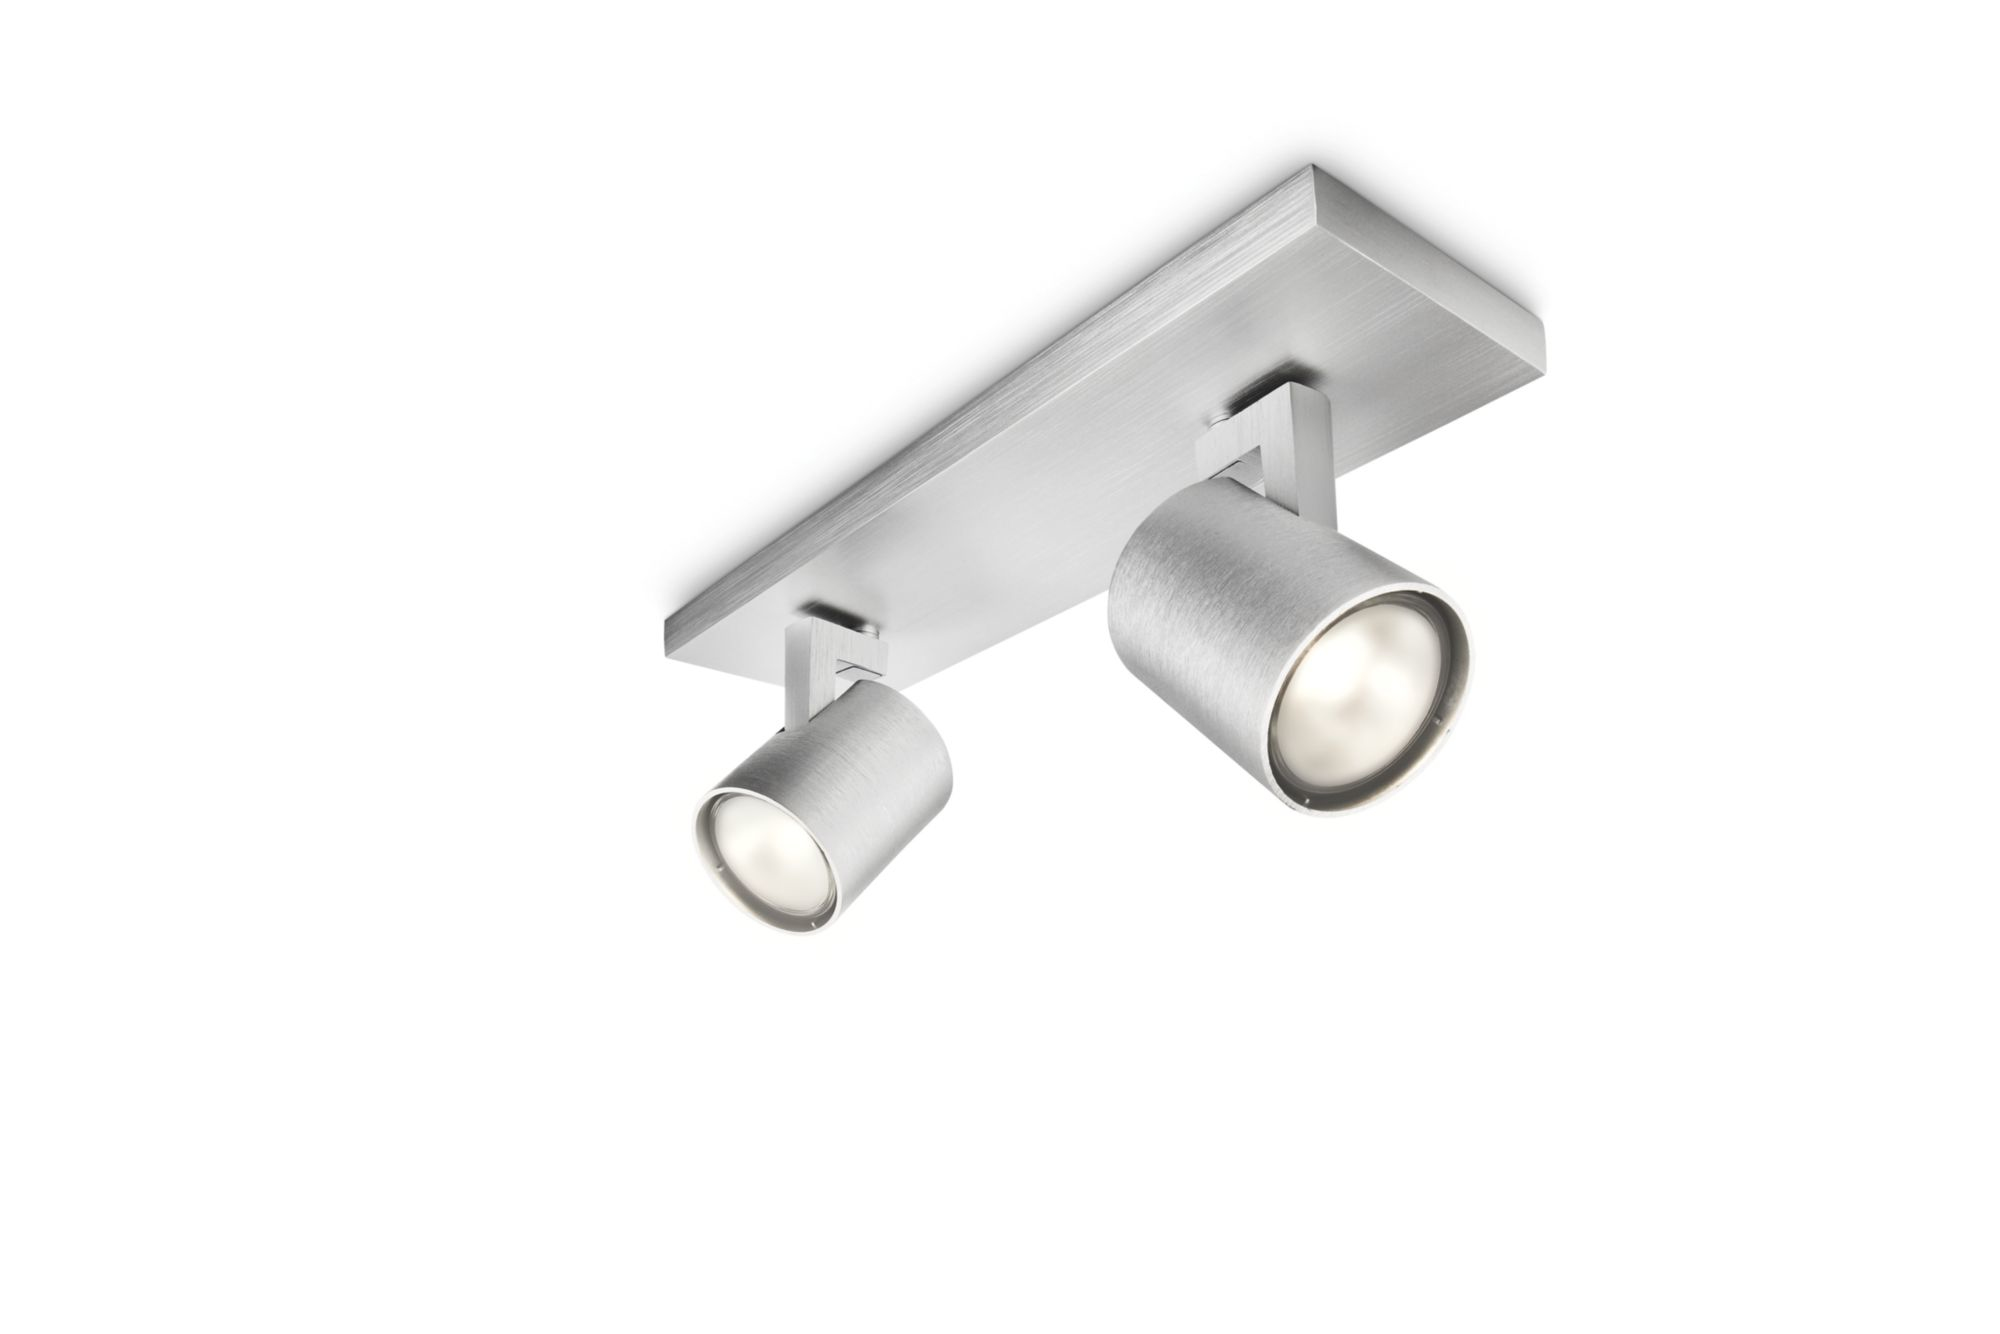 Philips Lighting - Runner 2xGU10 Alluminio - 530924812